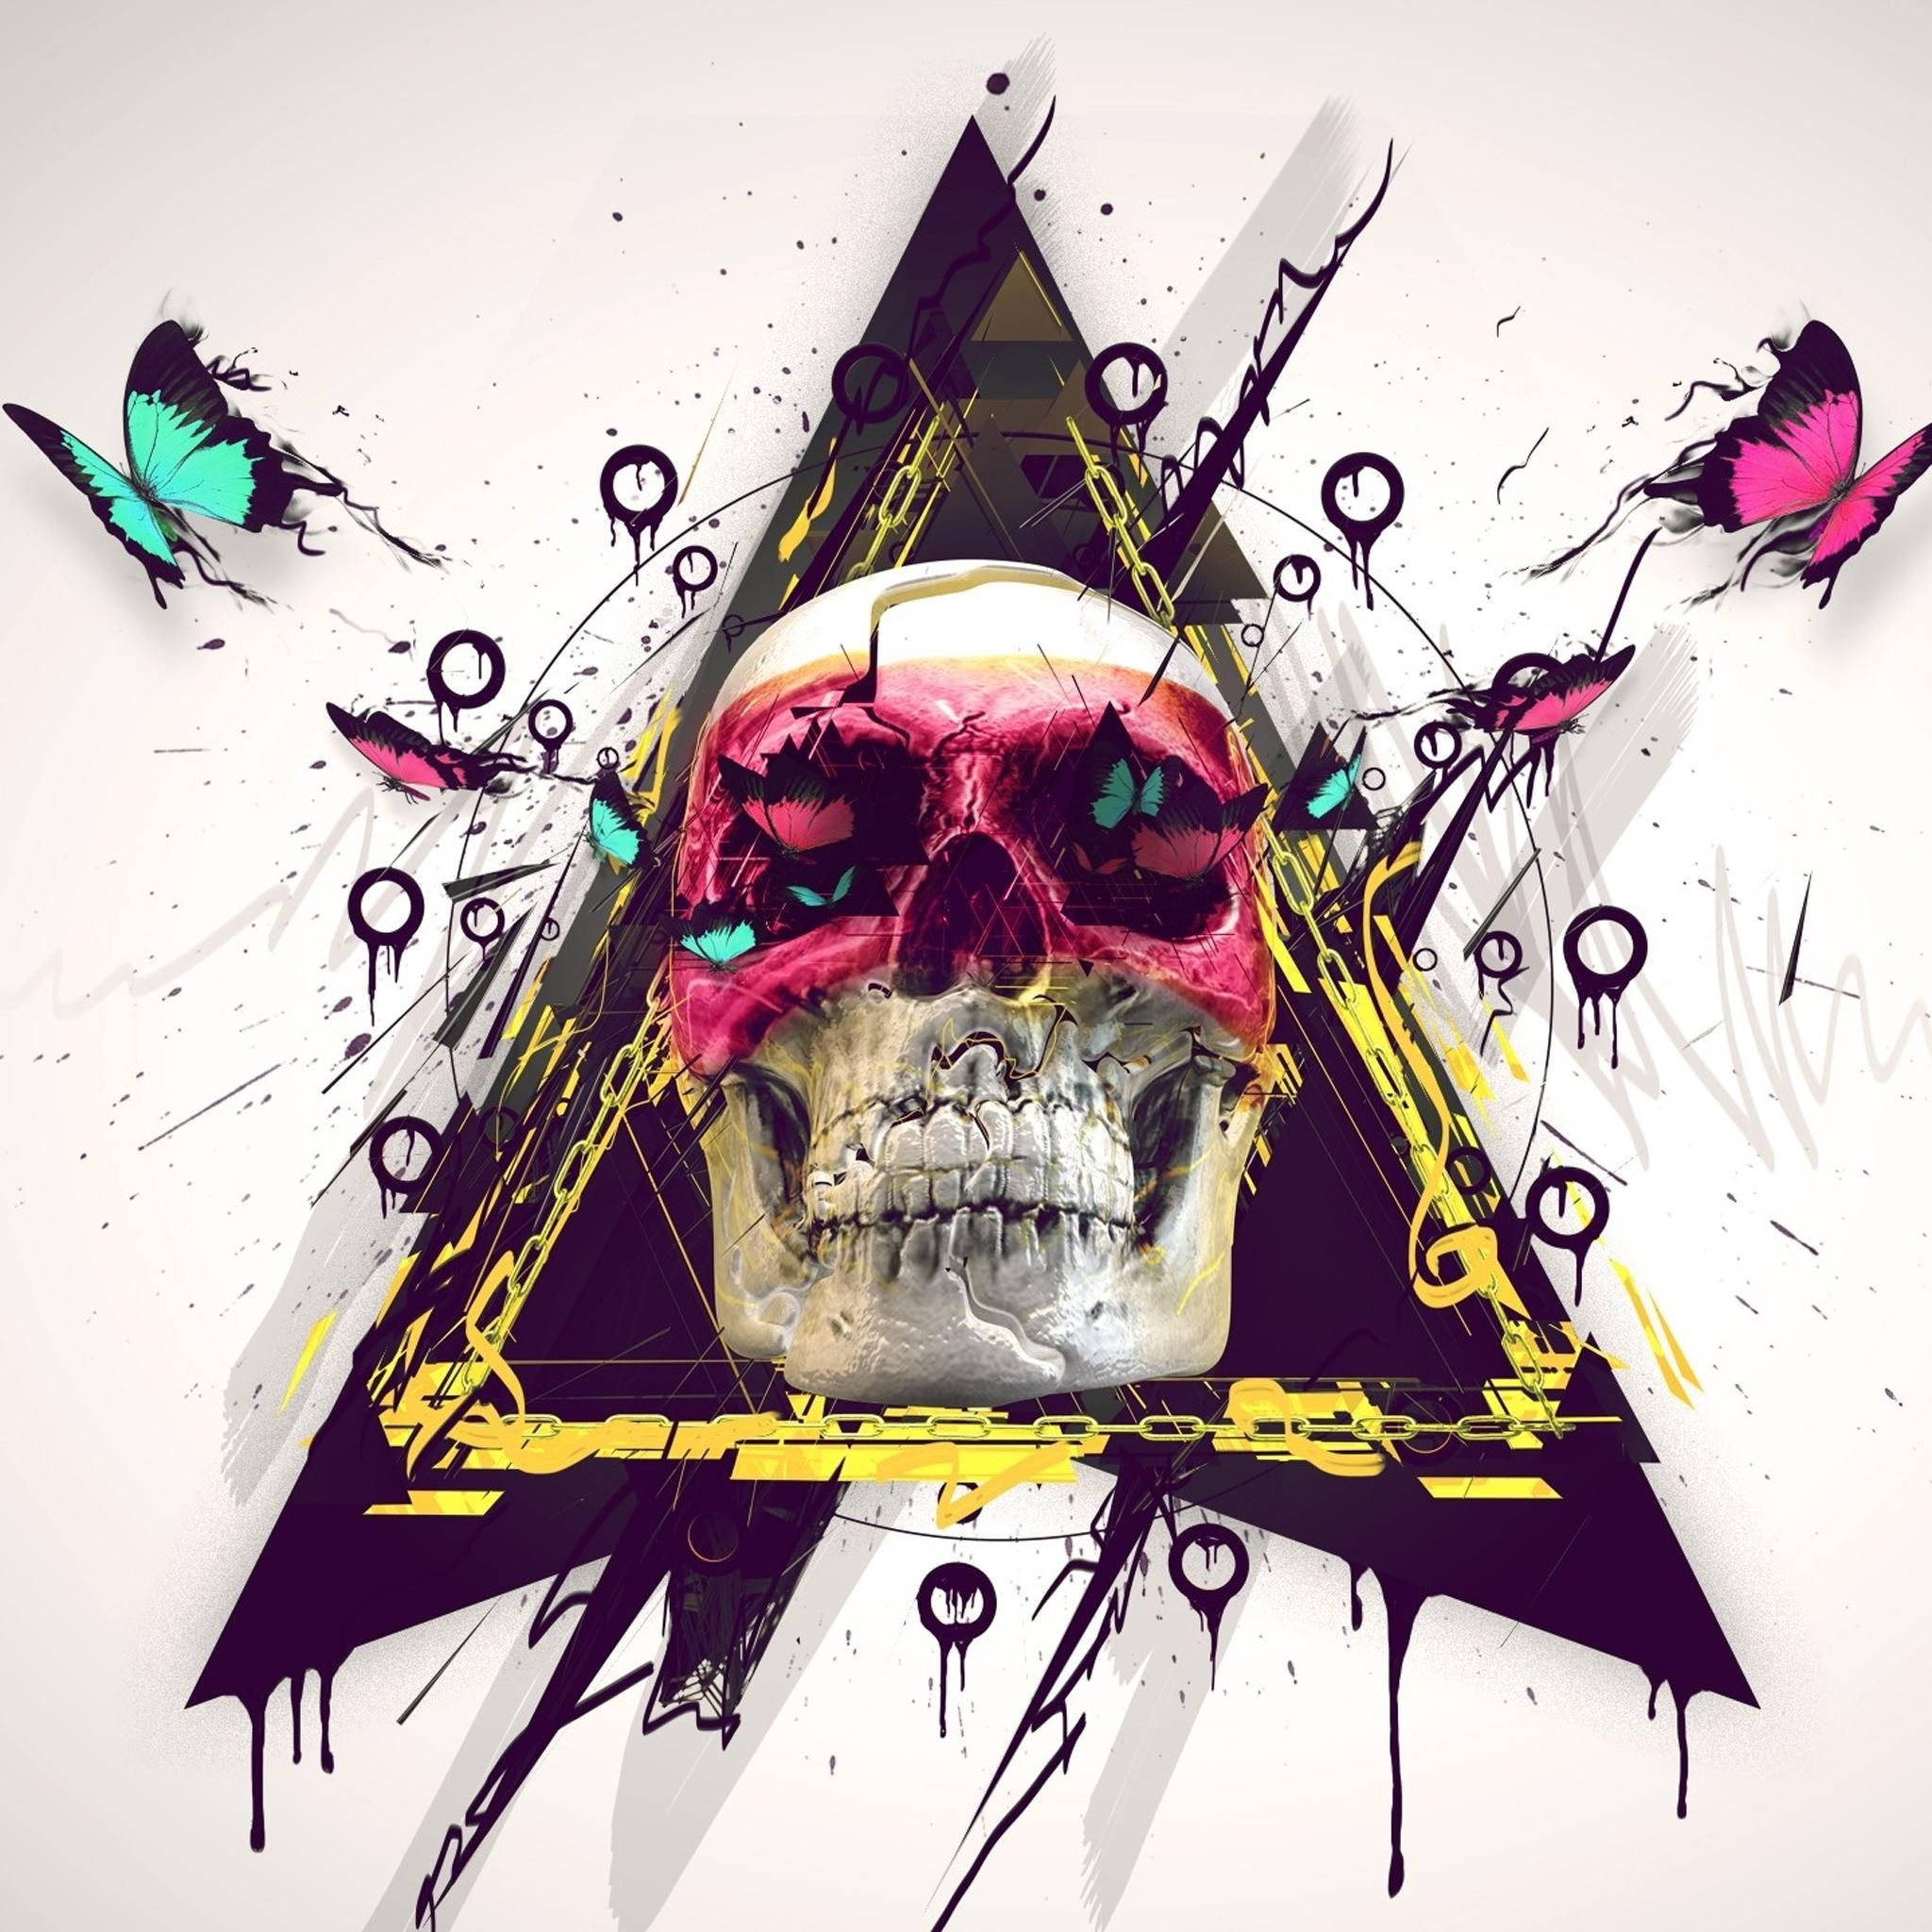 Iphone wallpaper tumblr skull - Fine Art Retina Wallpaper Ipad 3 By Lost Dove On Deviantart